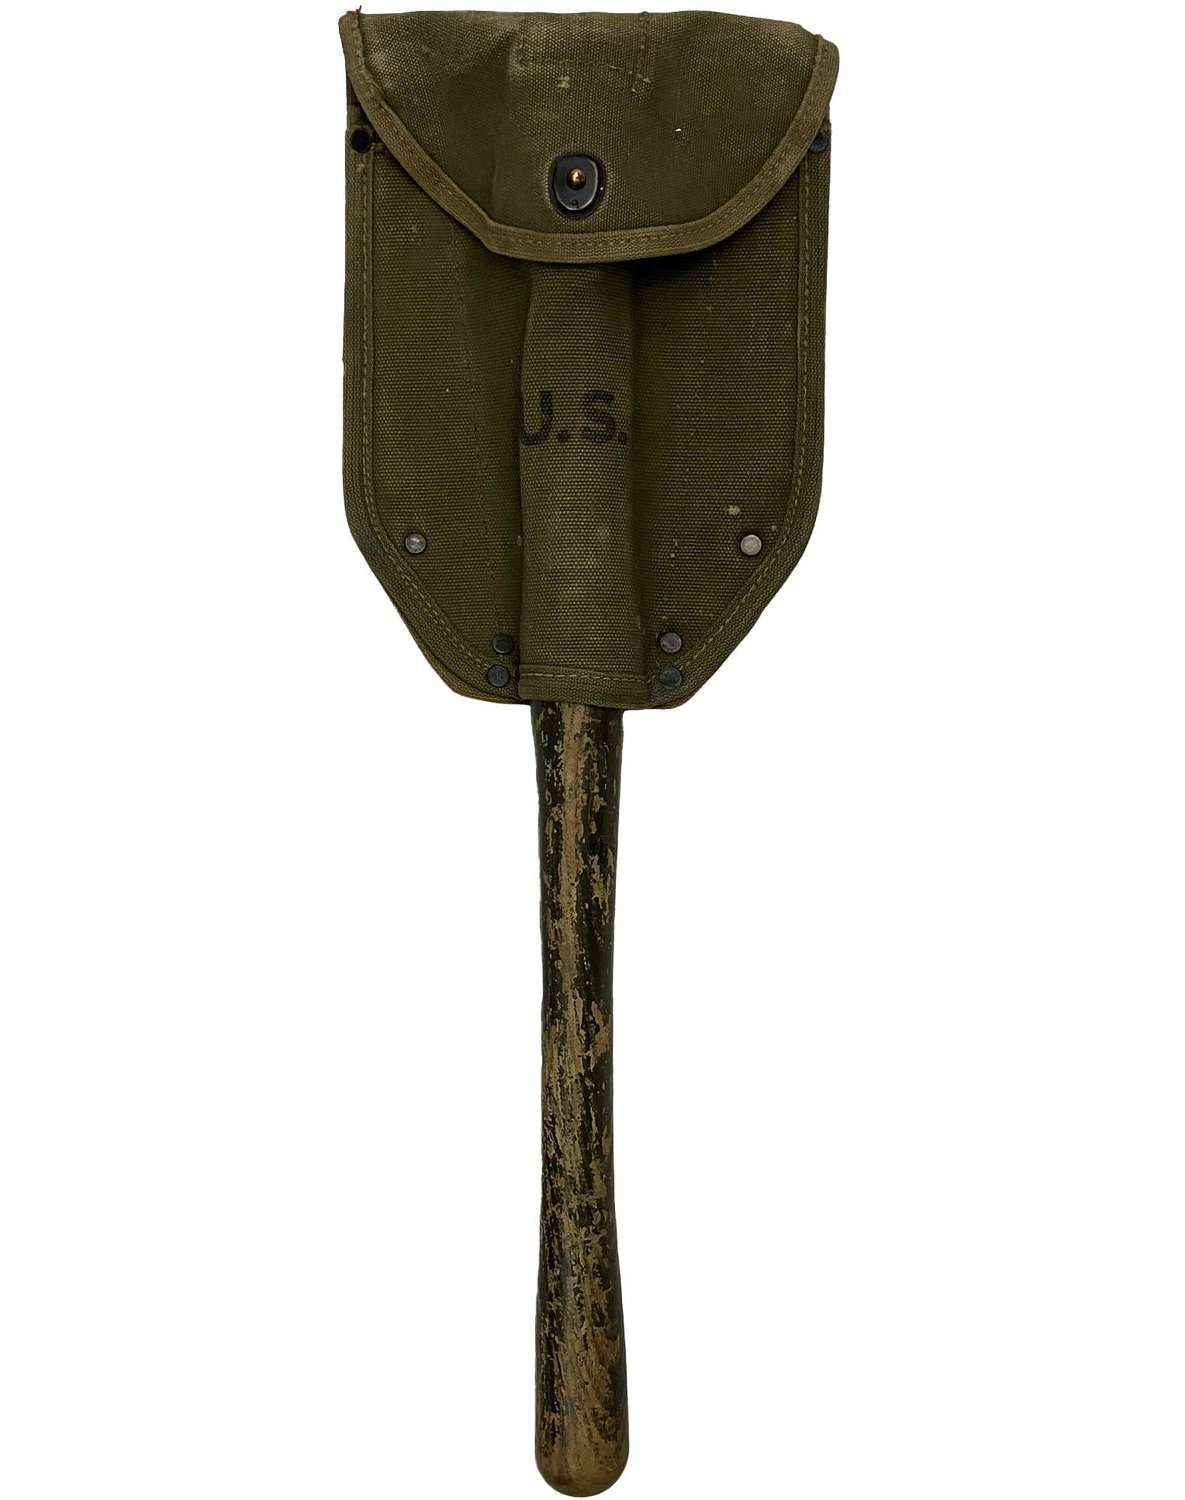 Original 1944 Dated US Army M1943 Shovel Cover and Spade